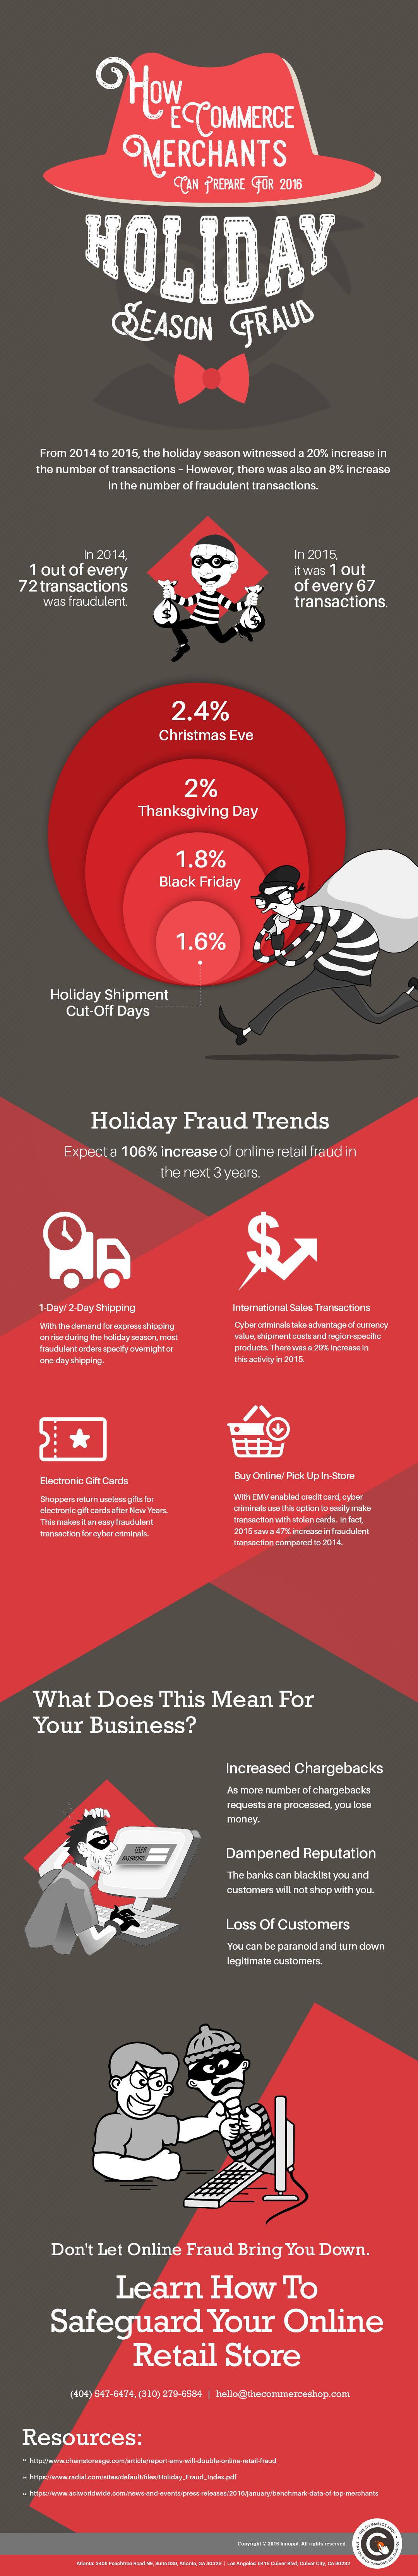 how-ecommerce-merchants-can-prepare-for-2016-holiday-season-fraud